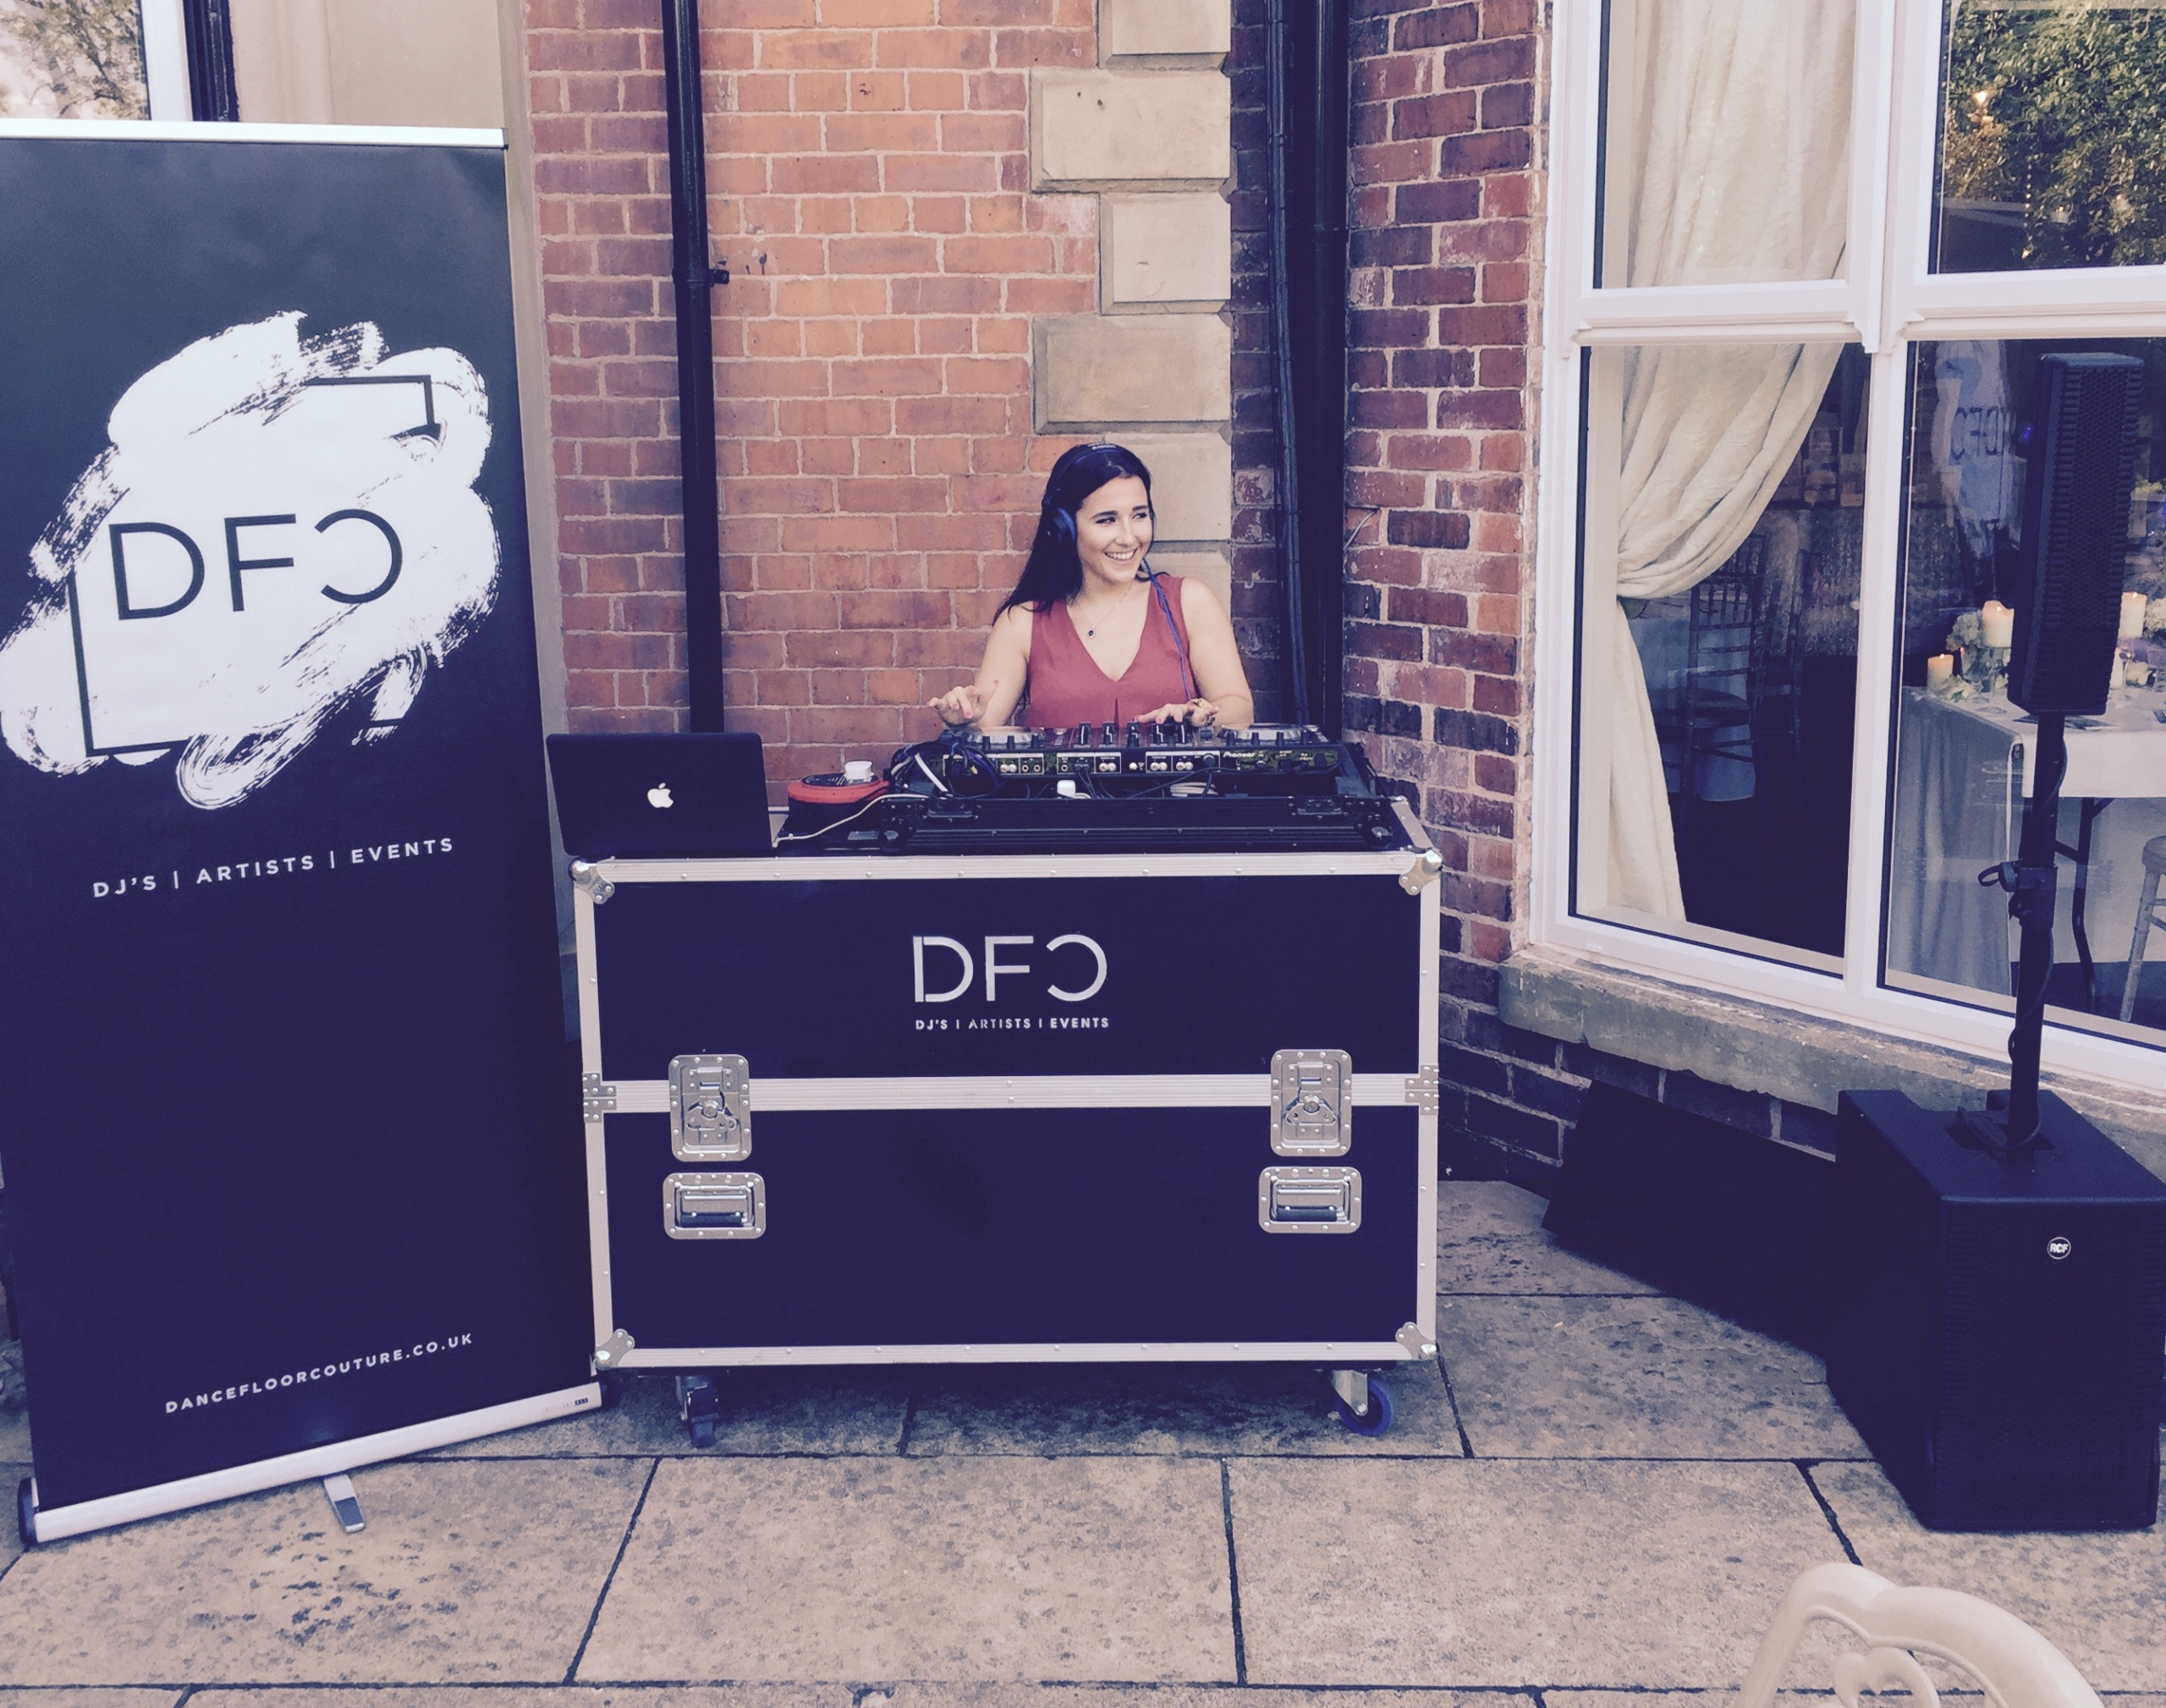 DFC Brings Ibizan Vibe to Ashfield House